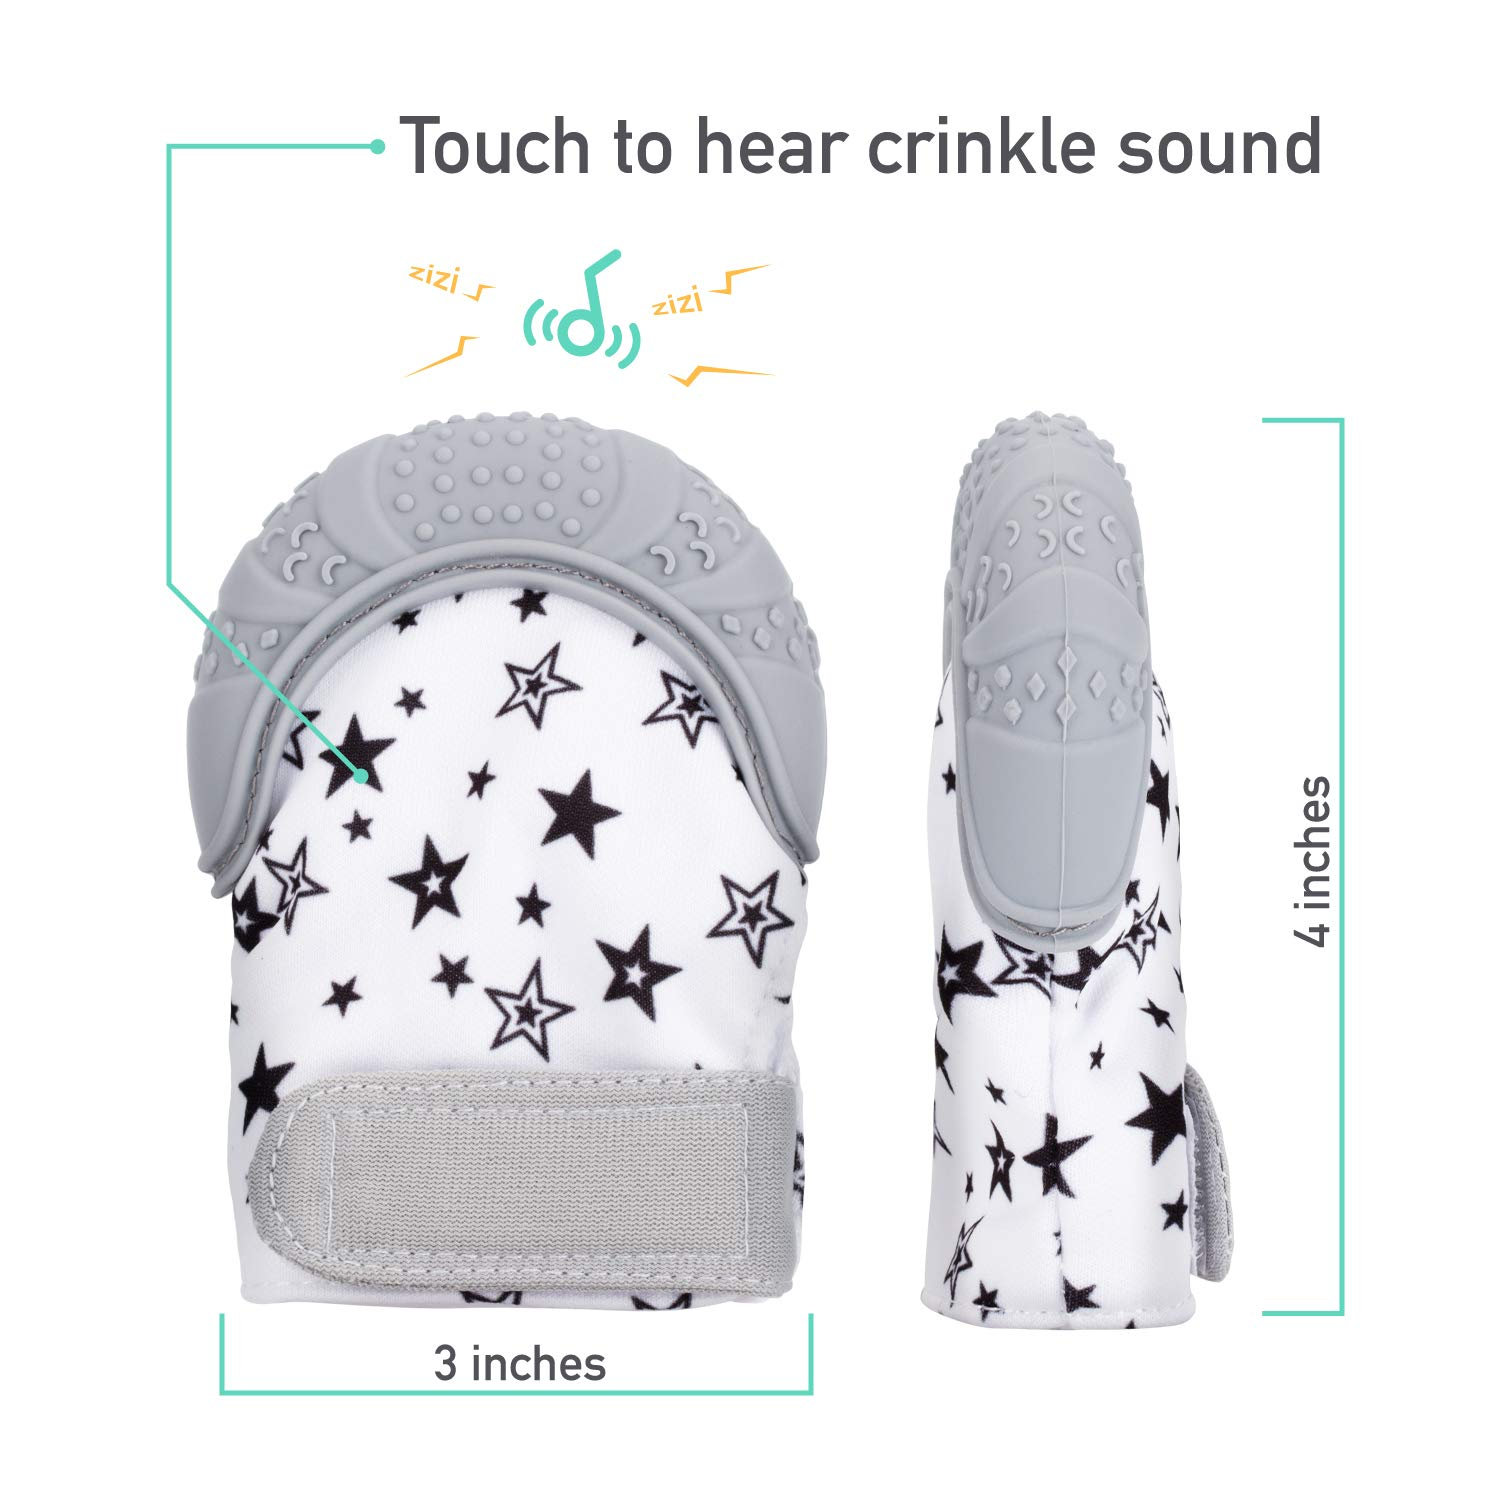 Unisex for 3+ Months Baby Babebay Baby Teething Mittens Baby Teething Toys for Soothing Pain Relief Self Mitten Teething Glove with Travel Bag 2 Pack Soothing Teething Mitten with 2 Pack Baby Toothbrush